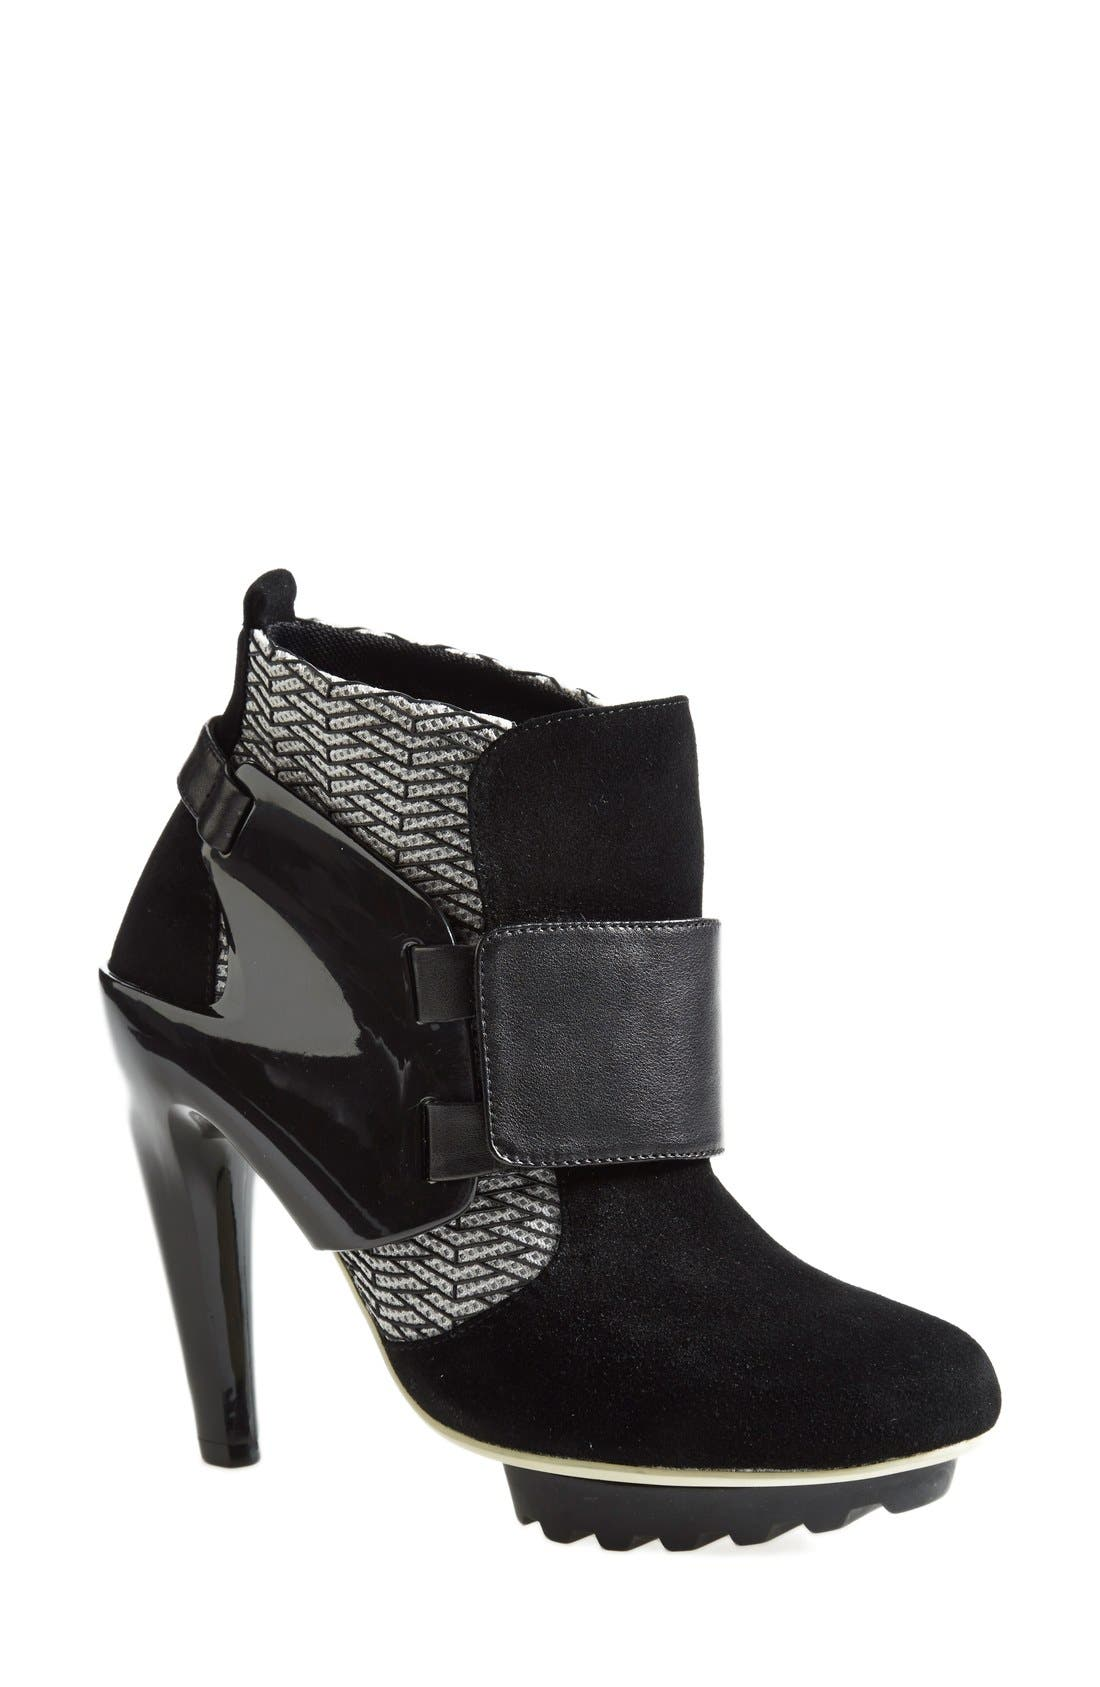 Main Image - United Nude Collection 'Spring Eros' Bootie (Women)